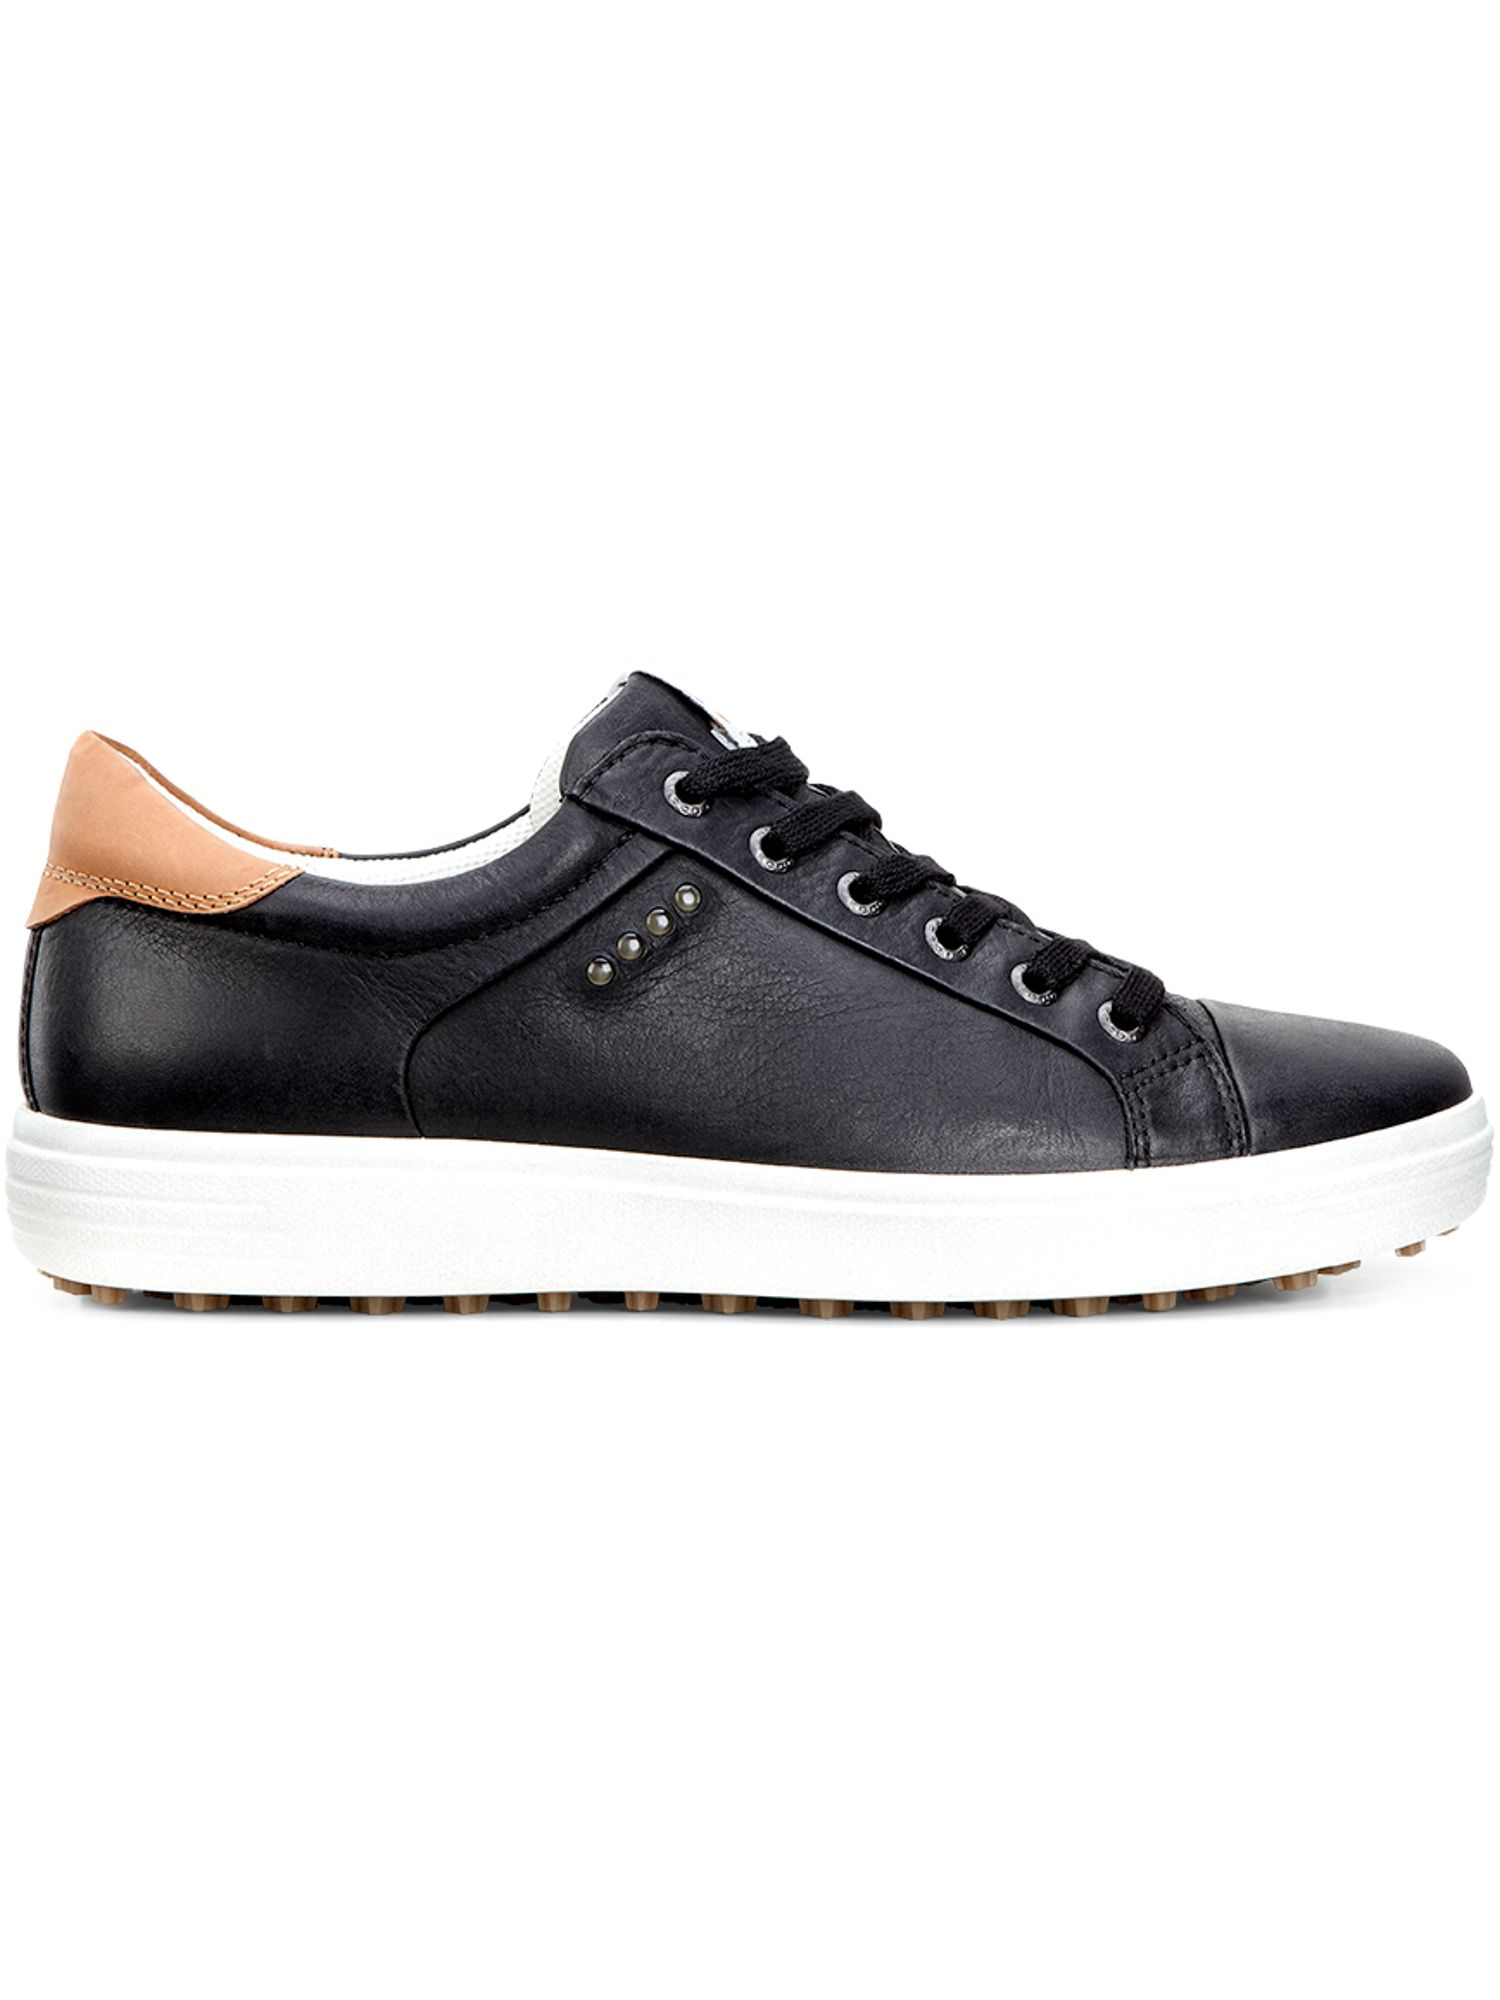 Ecco Golf Casual Shoes Black